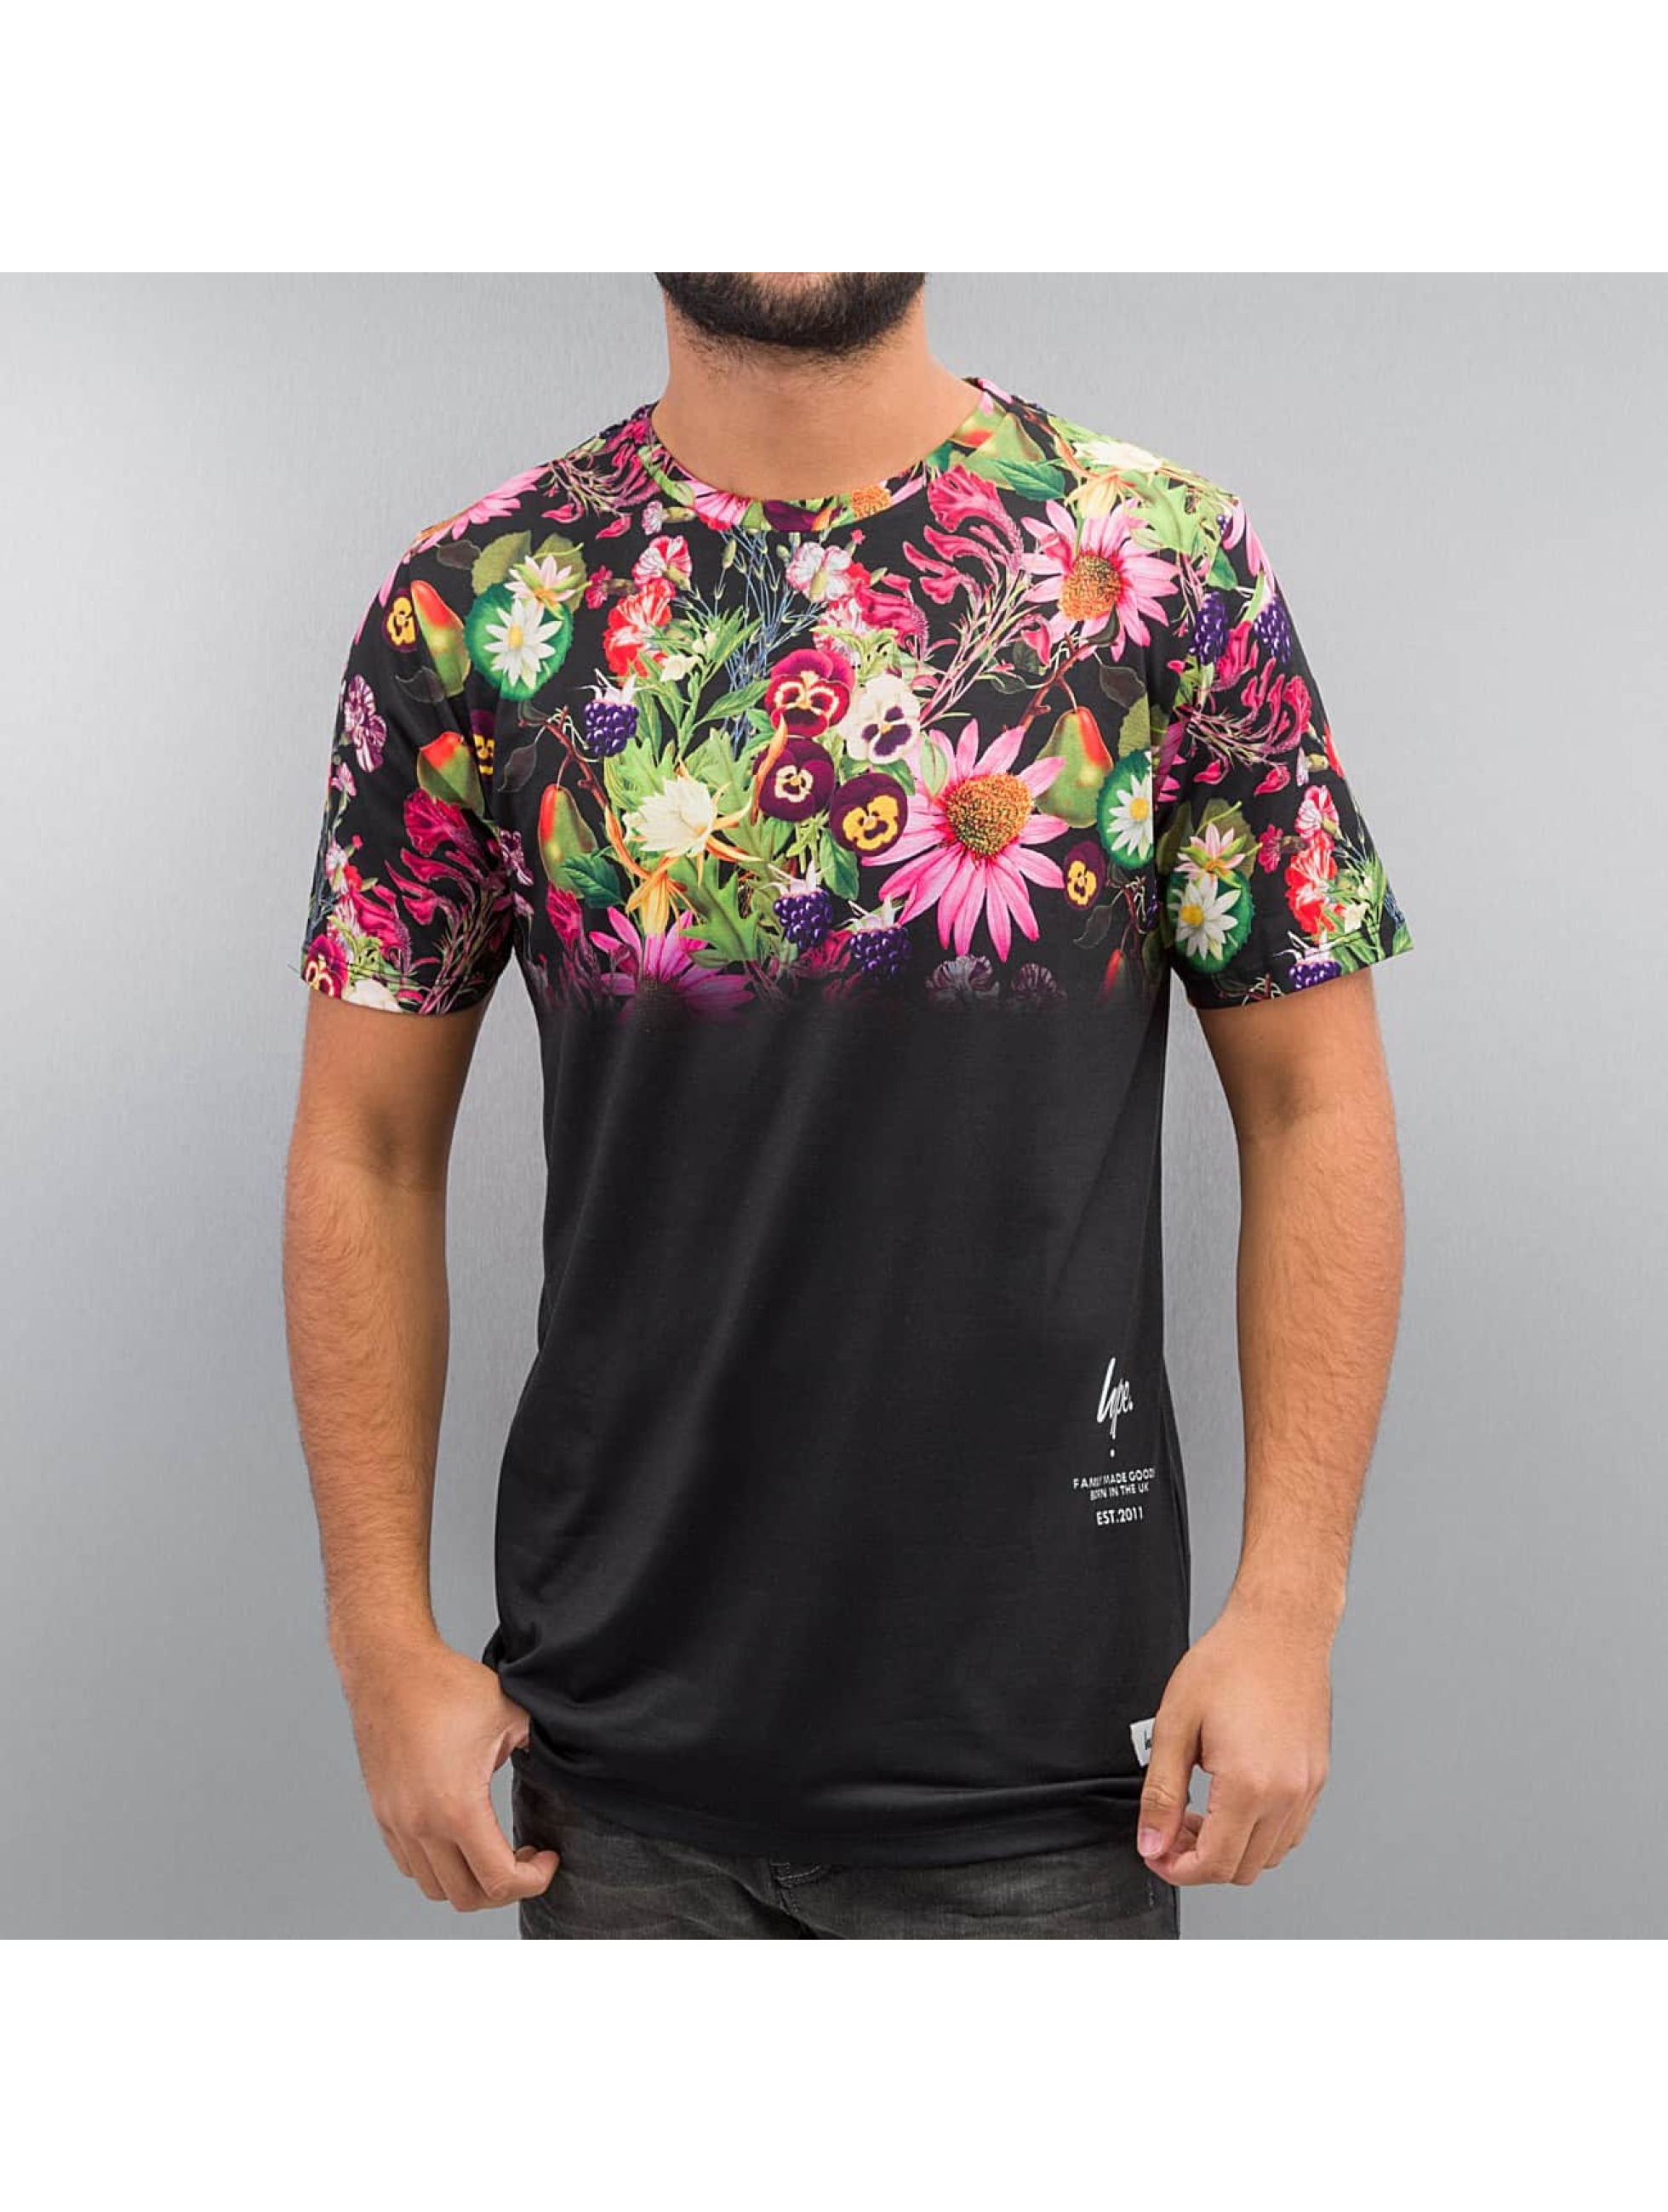 T-Shirt Friut Floral Fade in bunt